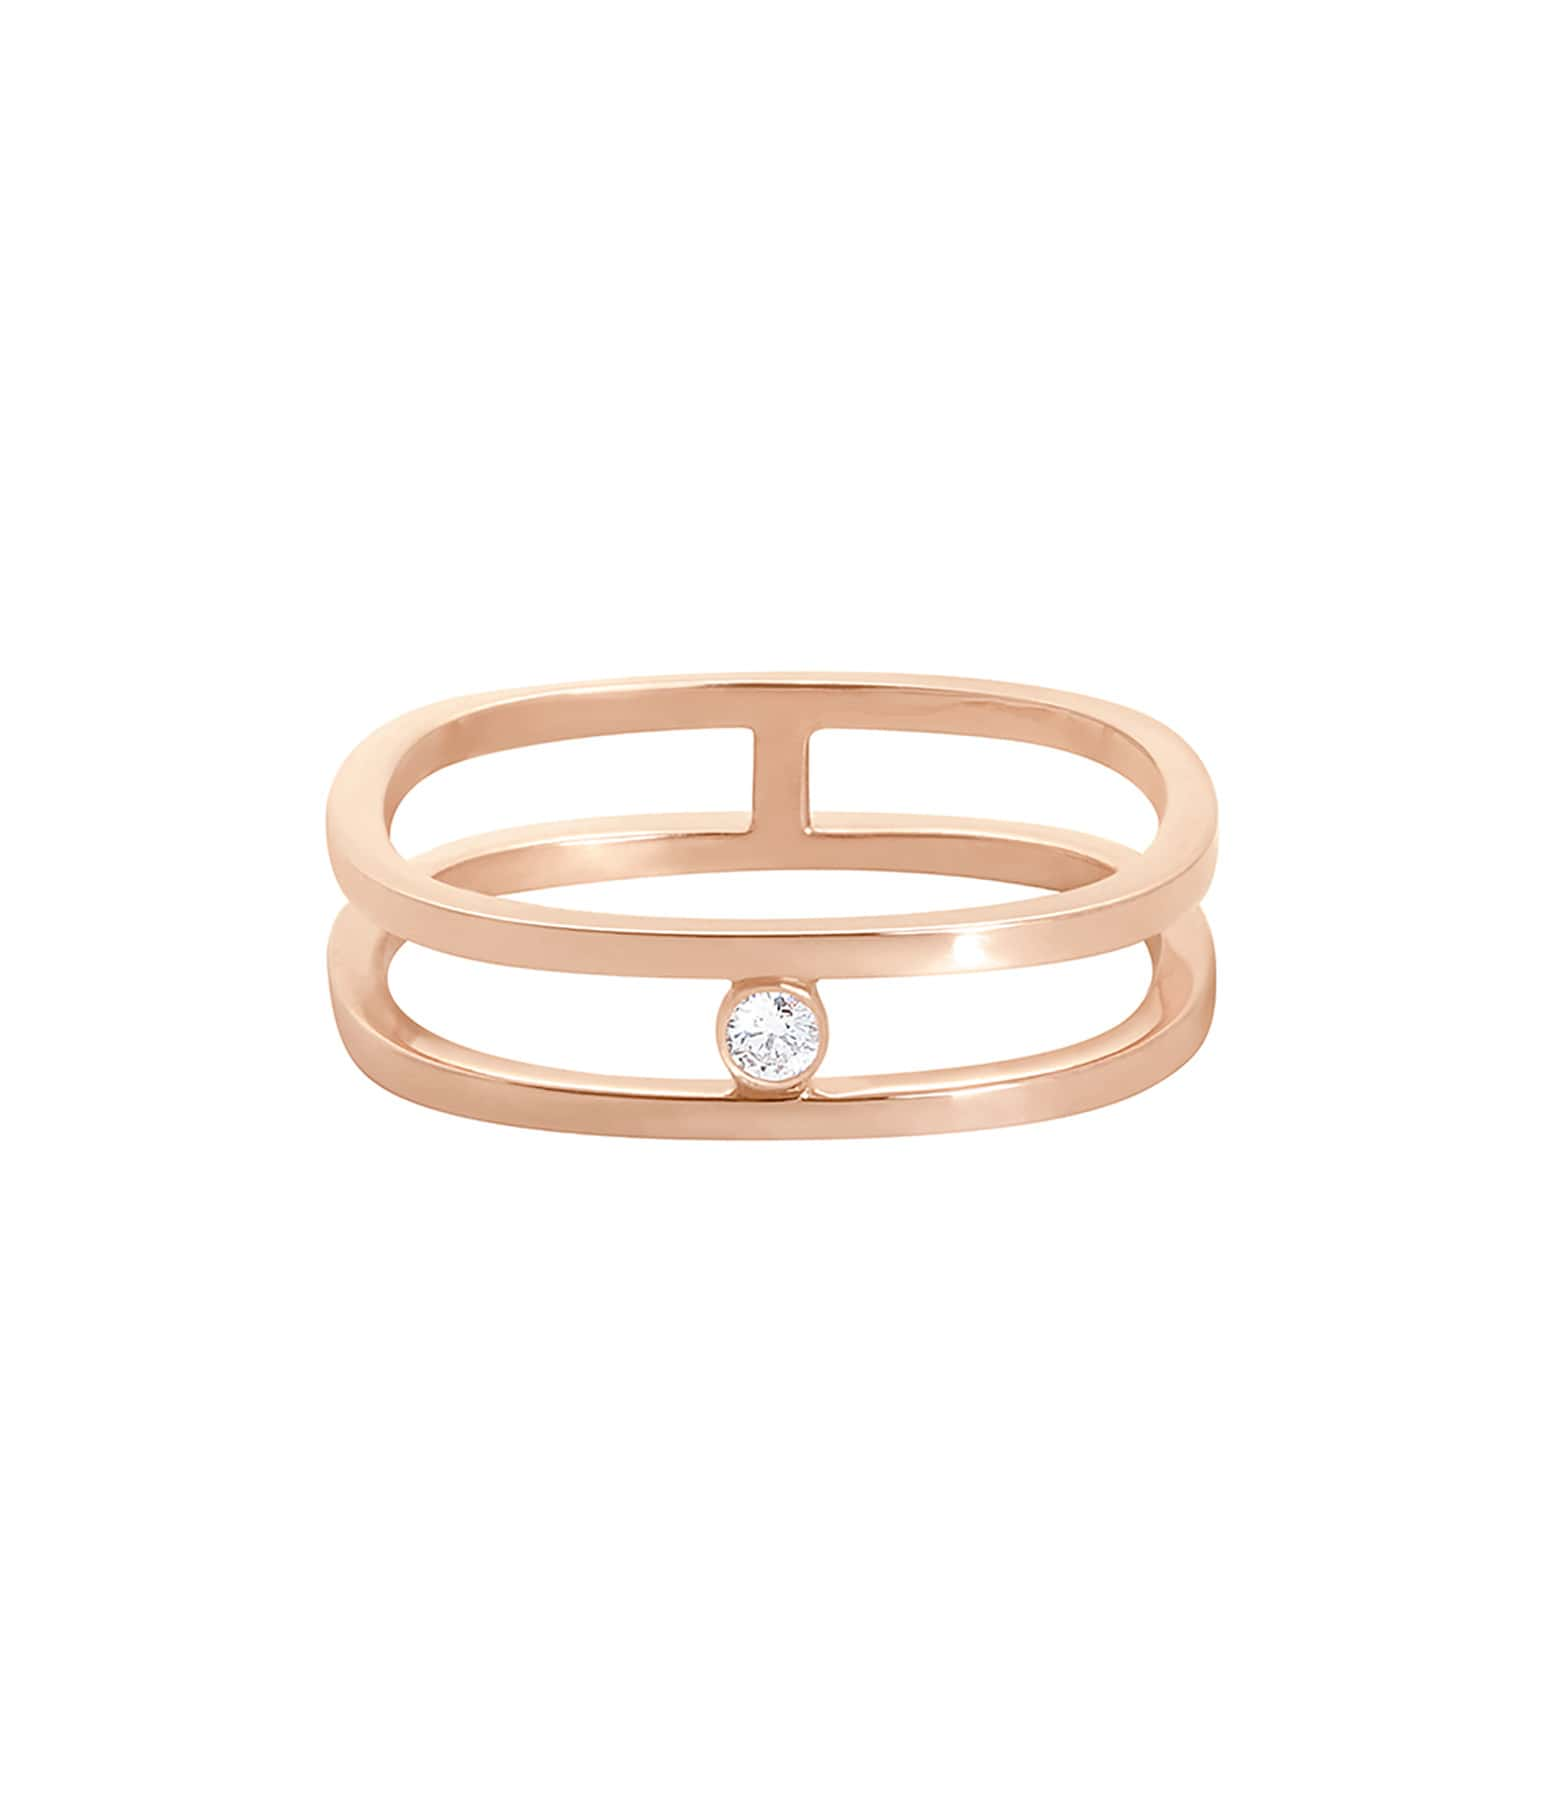 VANRYCKE - Bague Charlie Double Or Rose Diamant